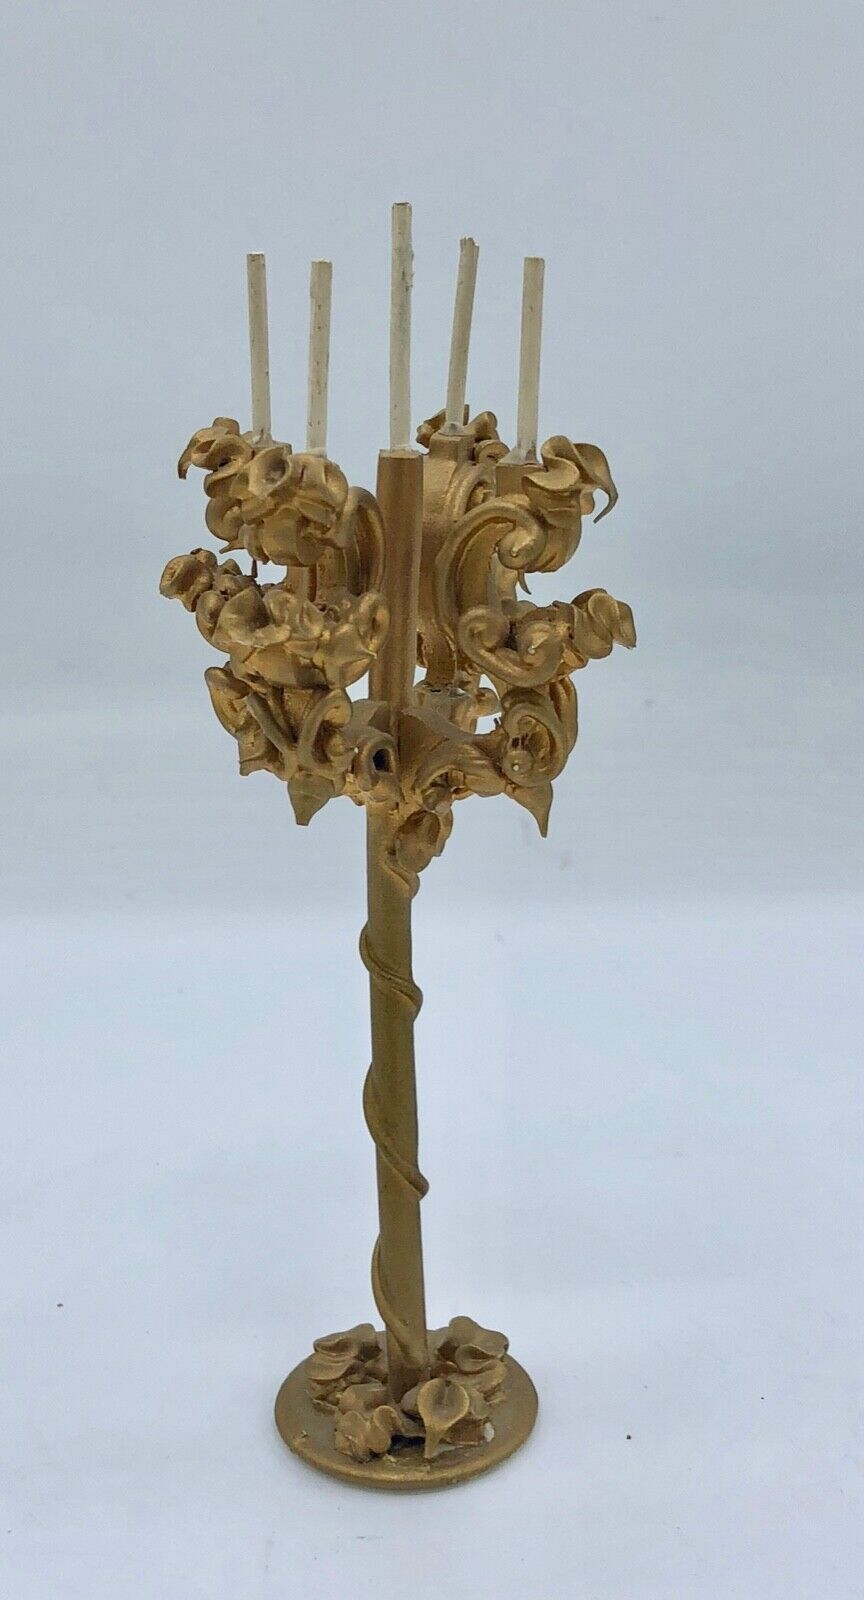 Spielwaren Doll Furniture Four Arm Candelabra Stand with Five Candles in Gold